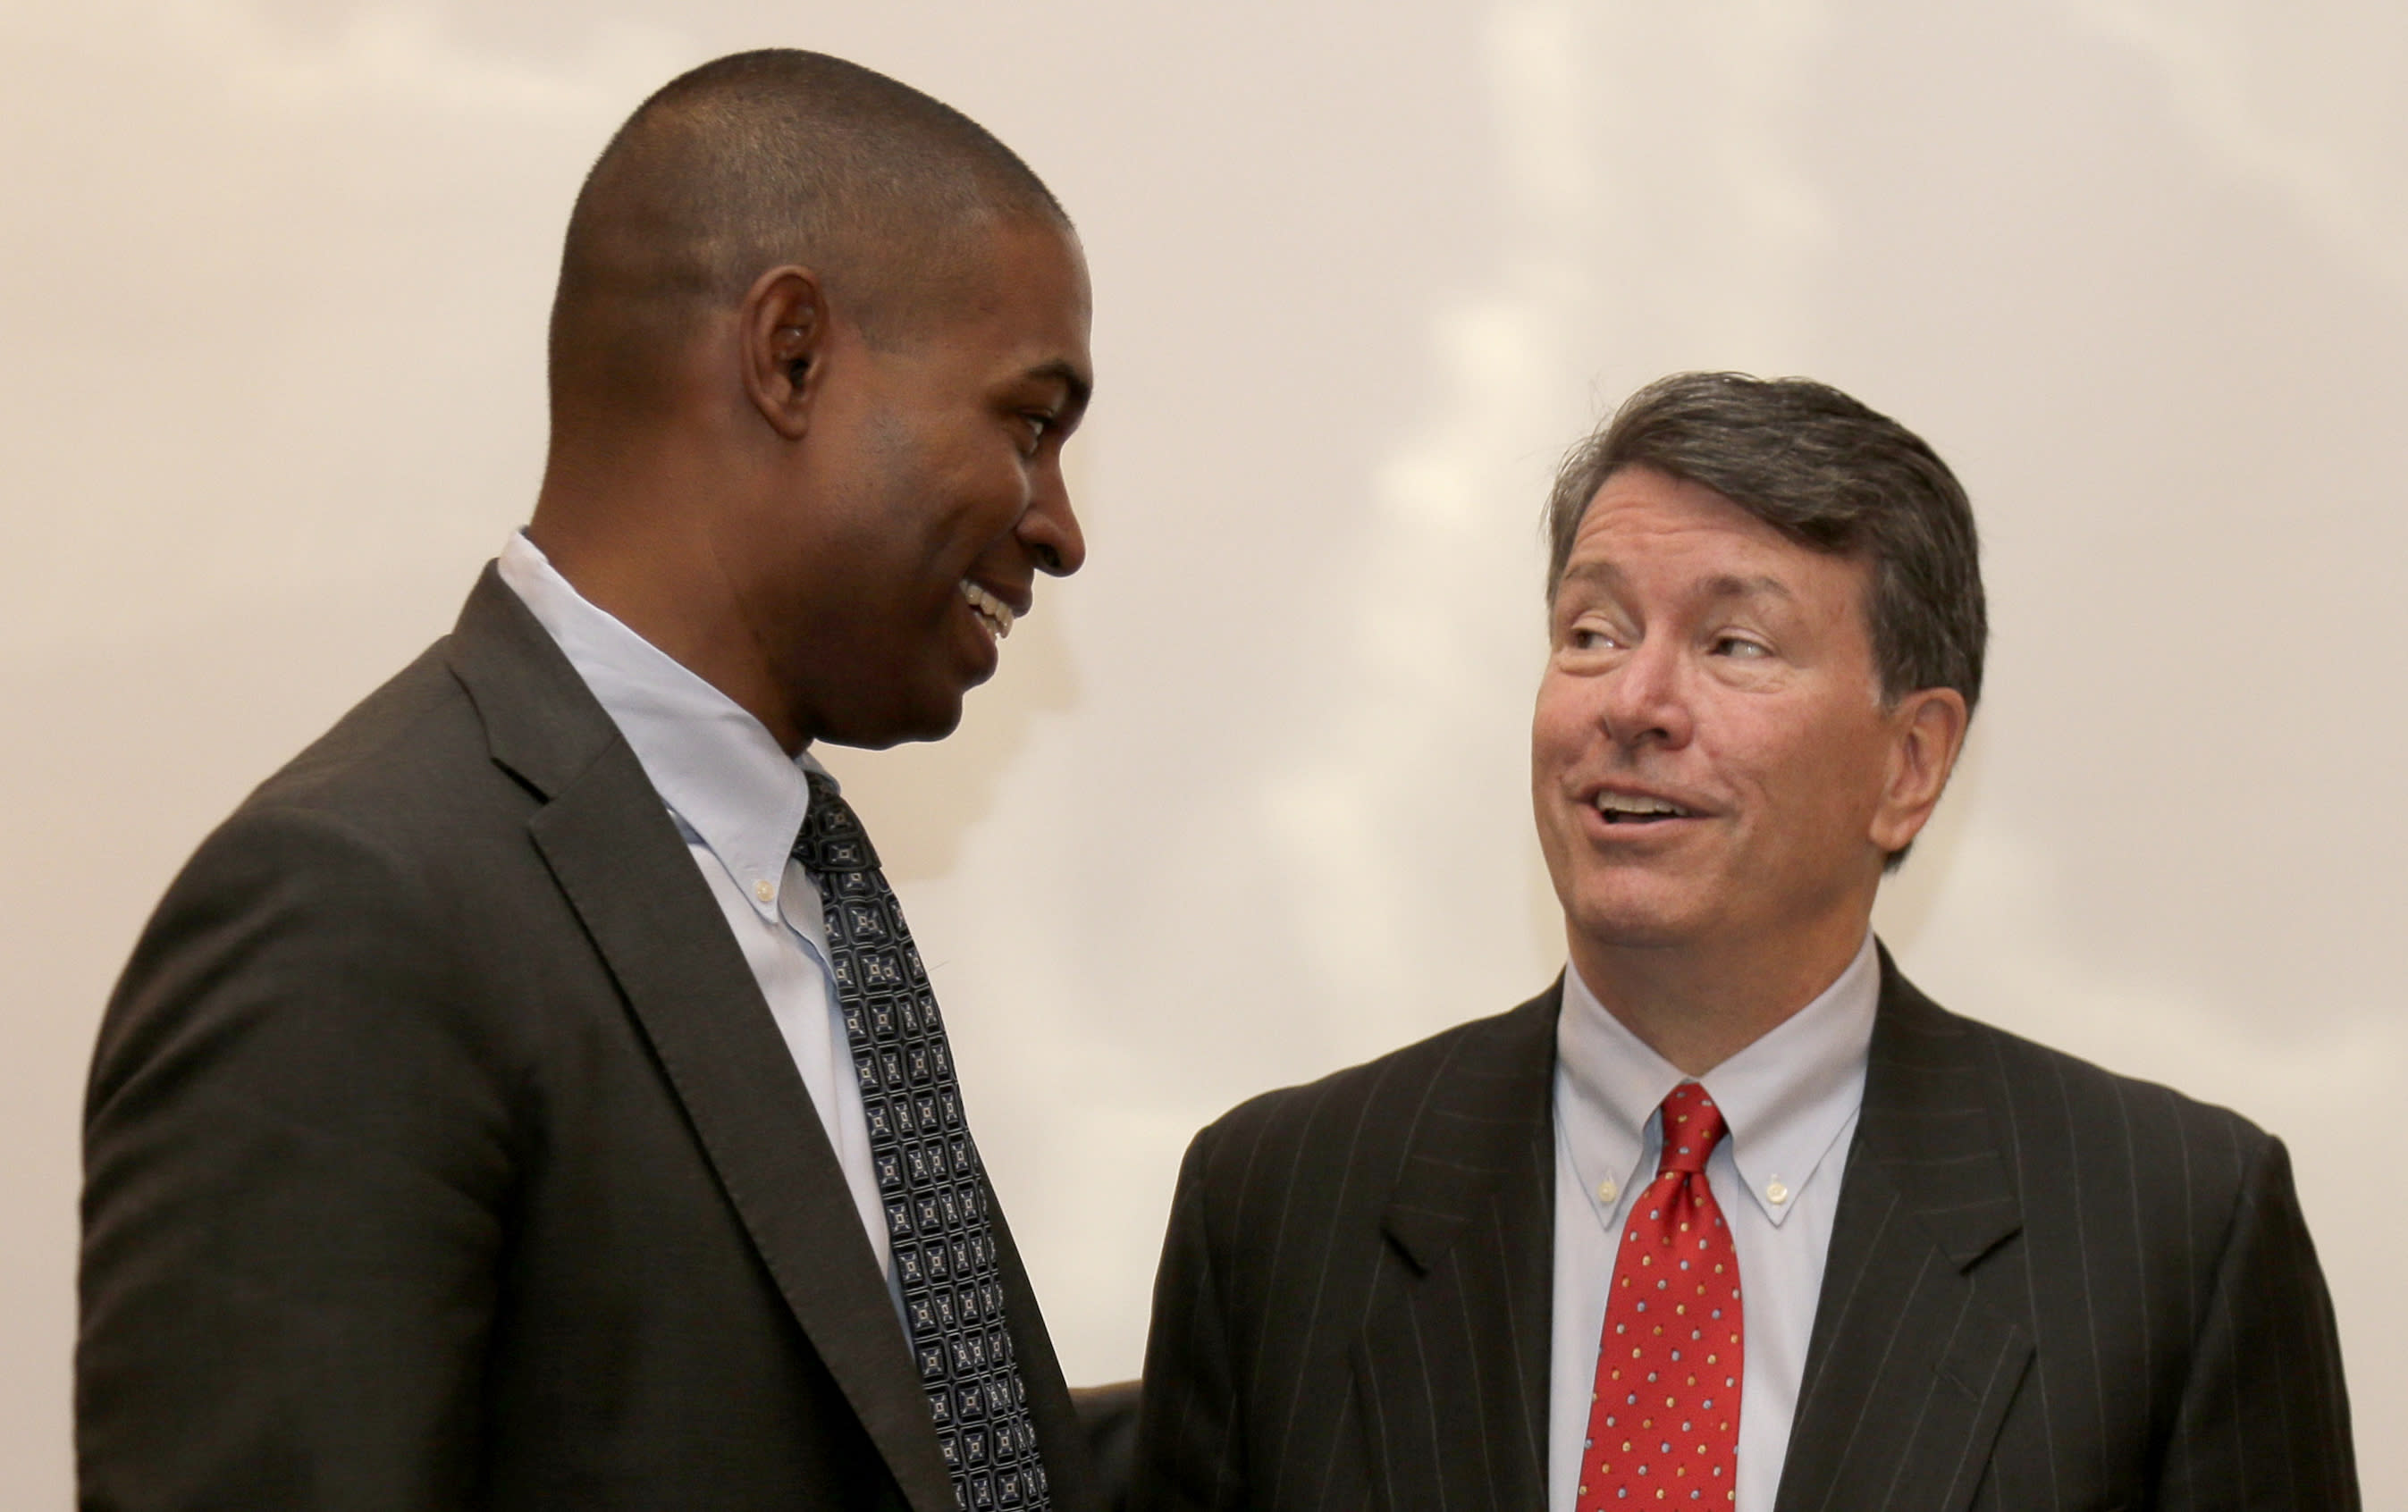 Republican U.S. Rep. John Faso, right, and his Democratic challenger, Antonio Delgado, talk after a candidate forum in Poughkeepsie, N.Y., Wednesday, Oct. 17, 2018. Hip-hop, health care and Brett Kavanaugh have emerged as issues in a too-close-to-call congressional race in New York's Hudson Valley that pits the freshman Republican congressman against a rapper-turned-corporate lawyer seeking his first political office. (AP Photo/Seth Wenig)